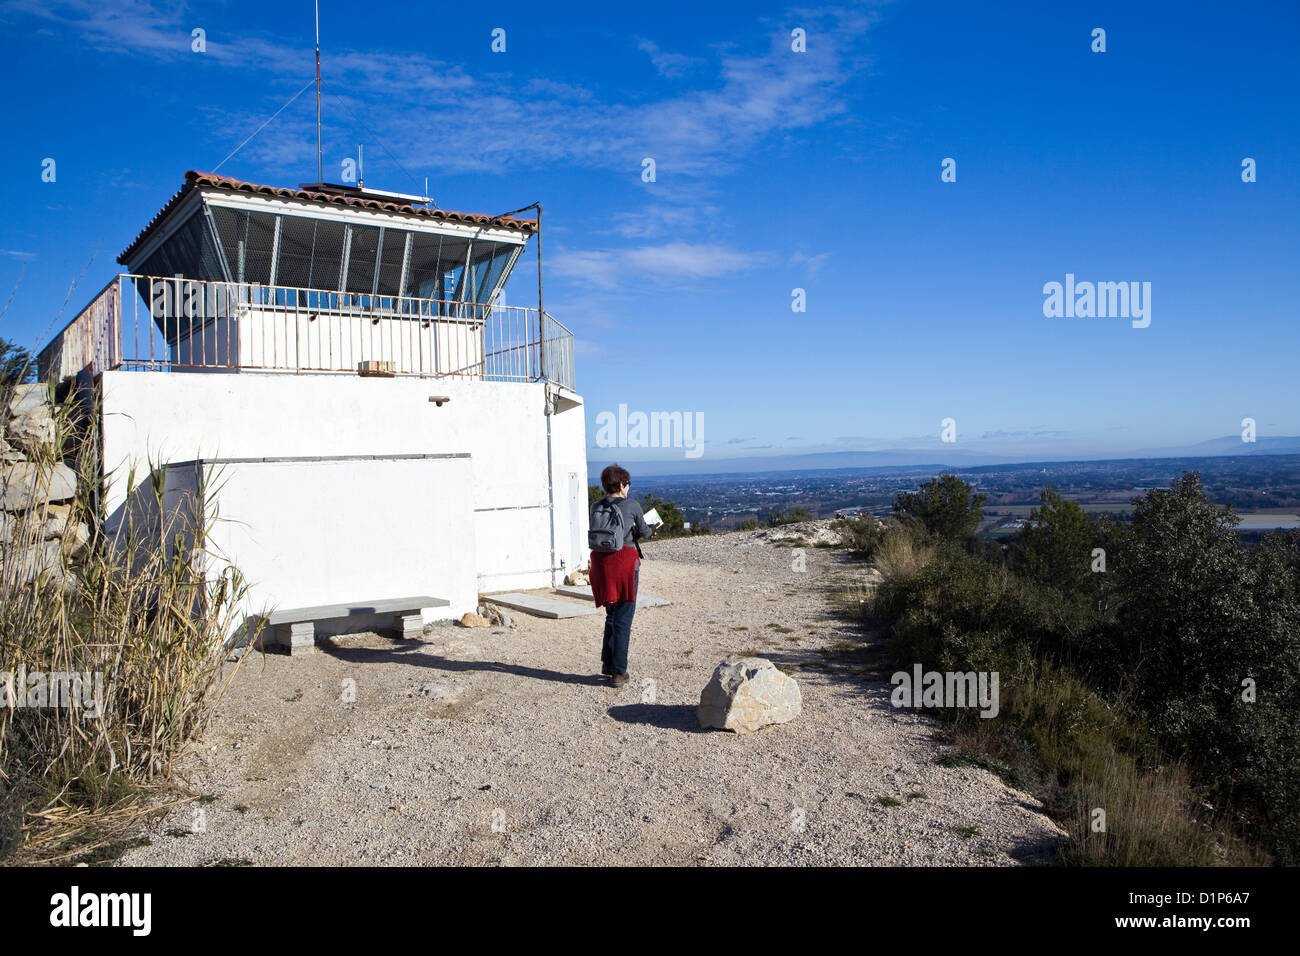 Watch tower - Stock Image